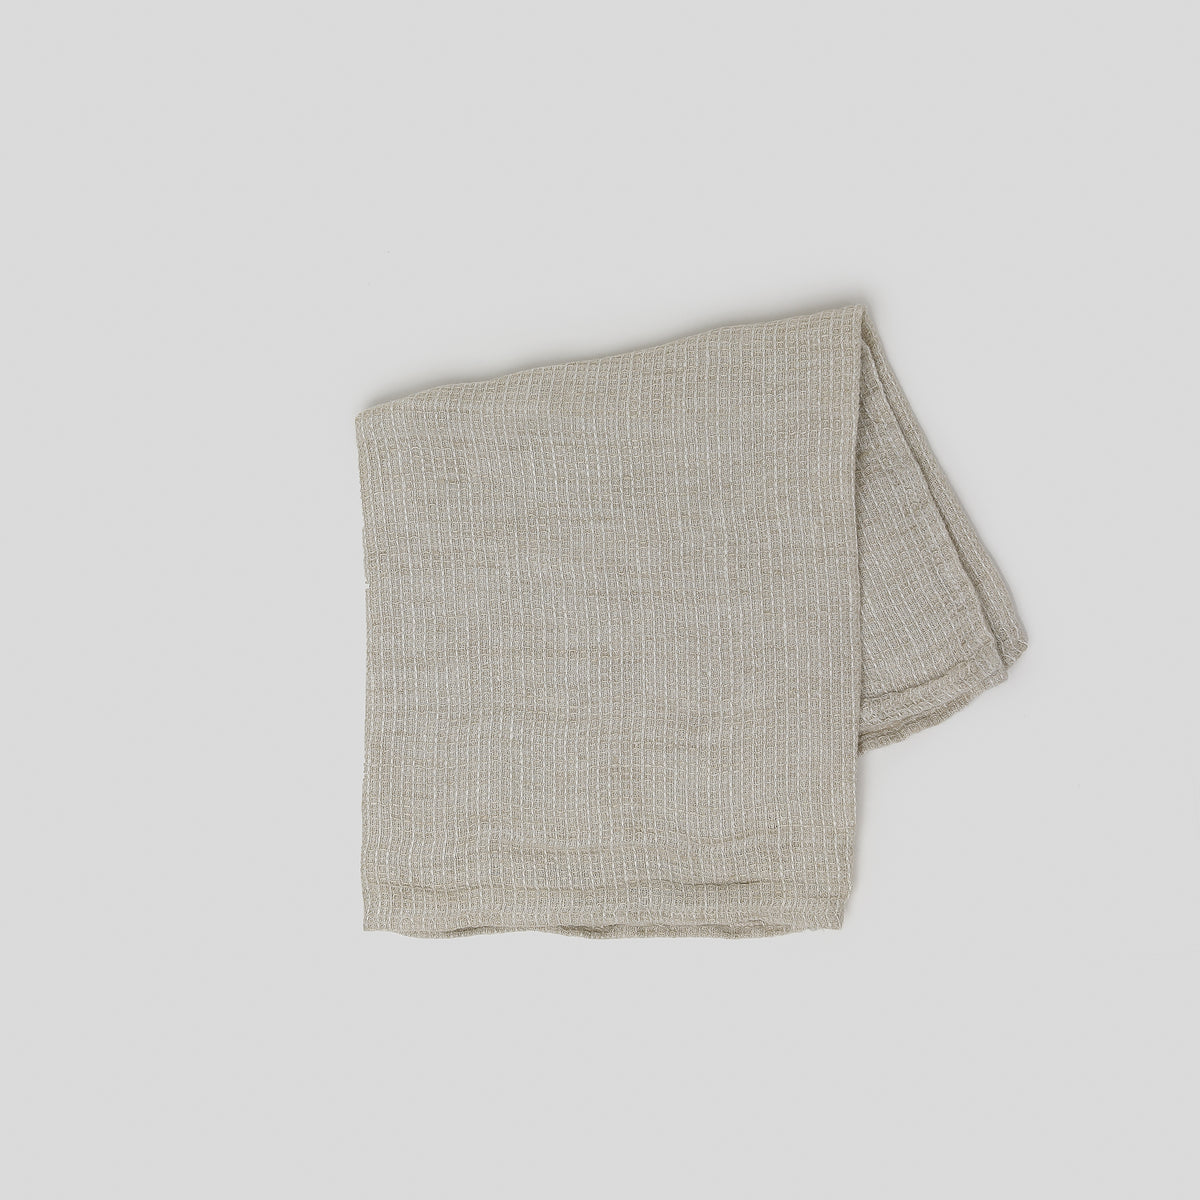 Load image into Gallery viewer, Basix Tutto Towel - Bath - Hand Towels – Shoppe Amber Interiors